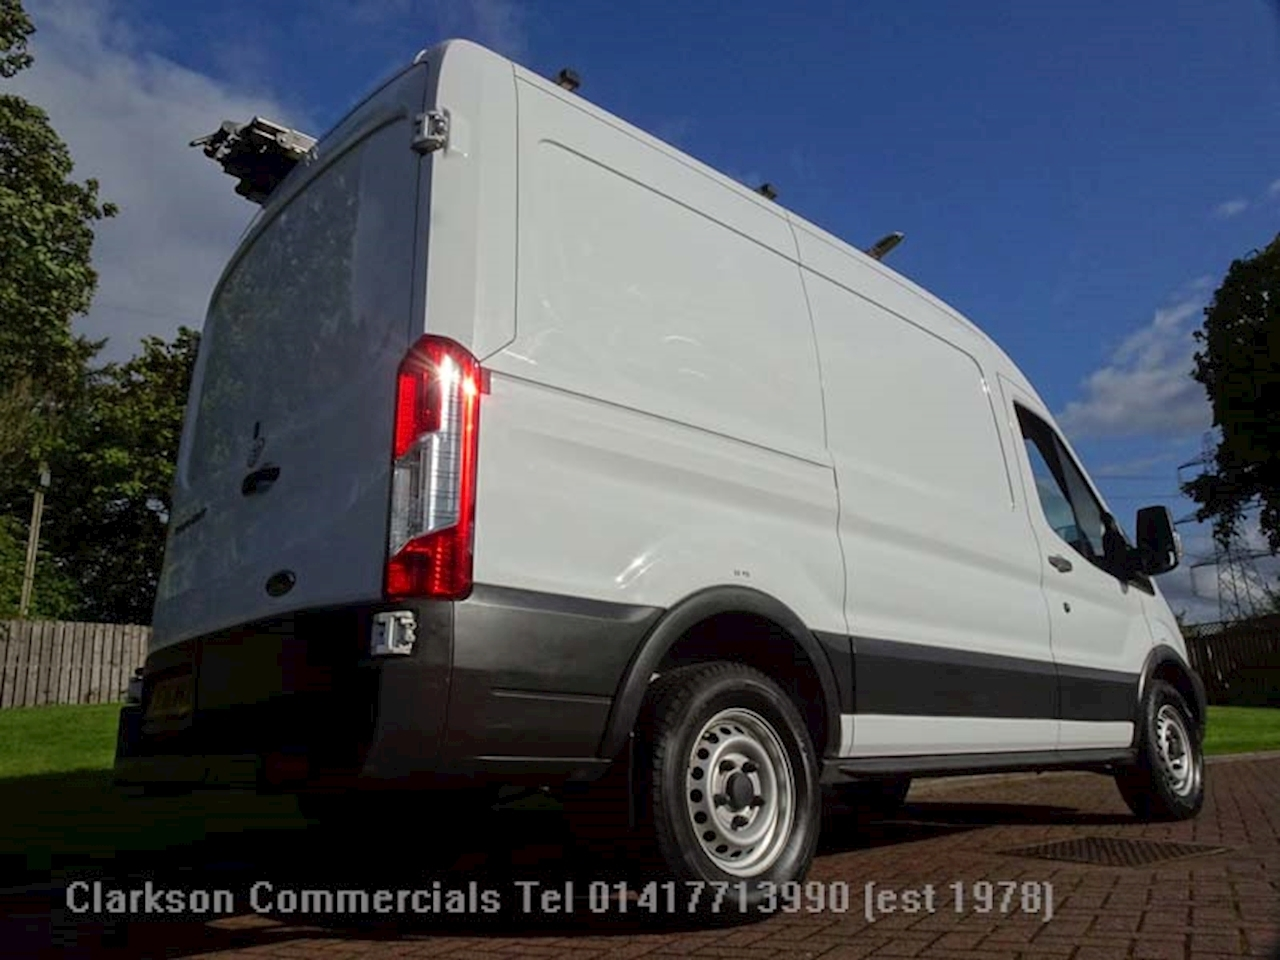 Ford Transit 2.2 TDCi 330 Panel Van 5dr Diesel Manual FWD L2 H2 EU5 (100 ps) Panel Van 2.2 Manual Diesel